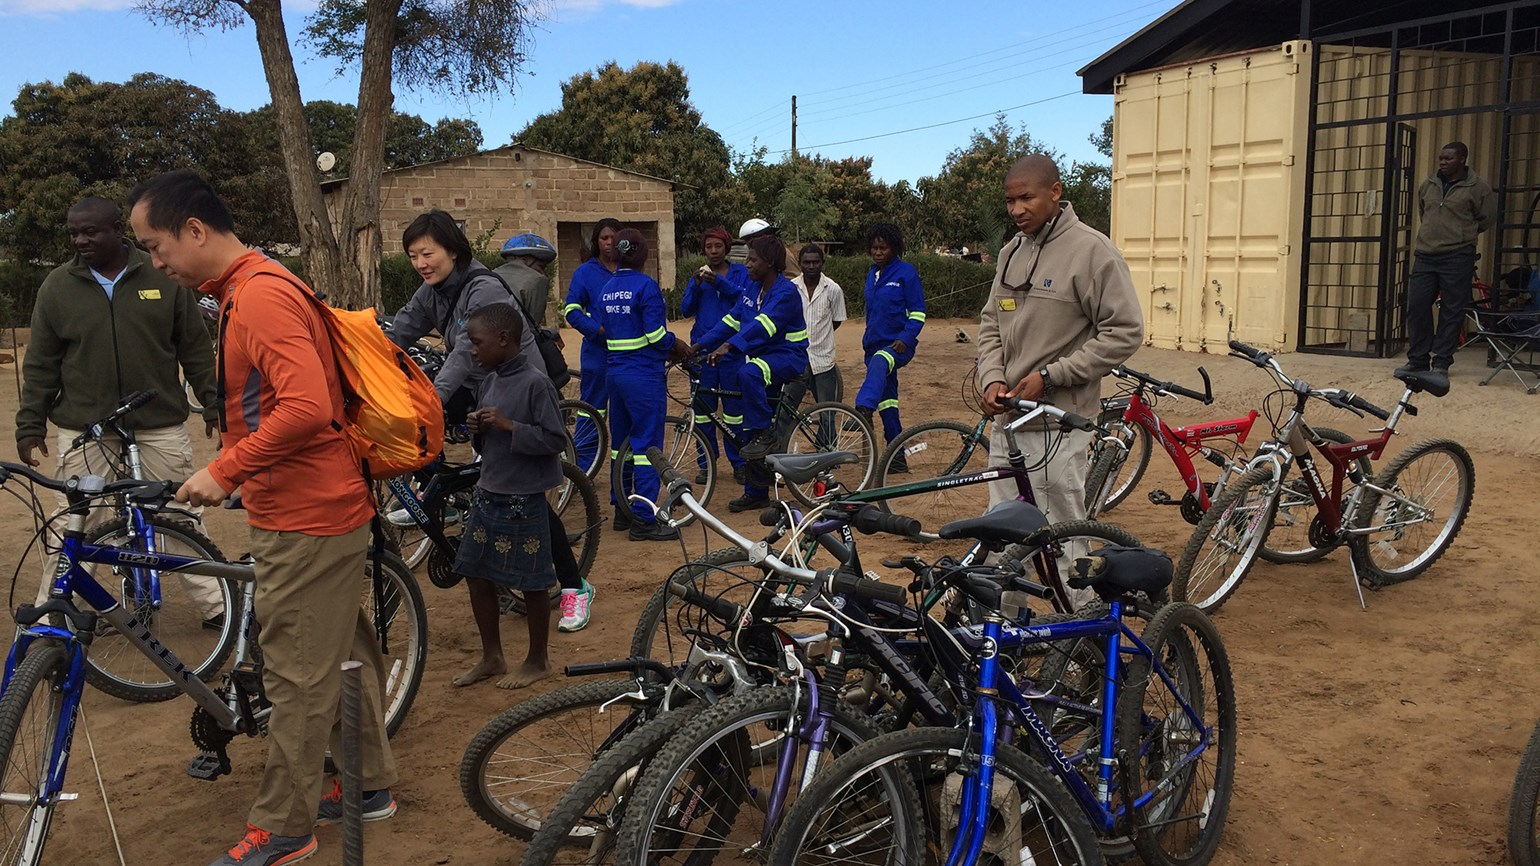 Promoting change with bicycles